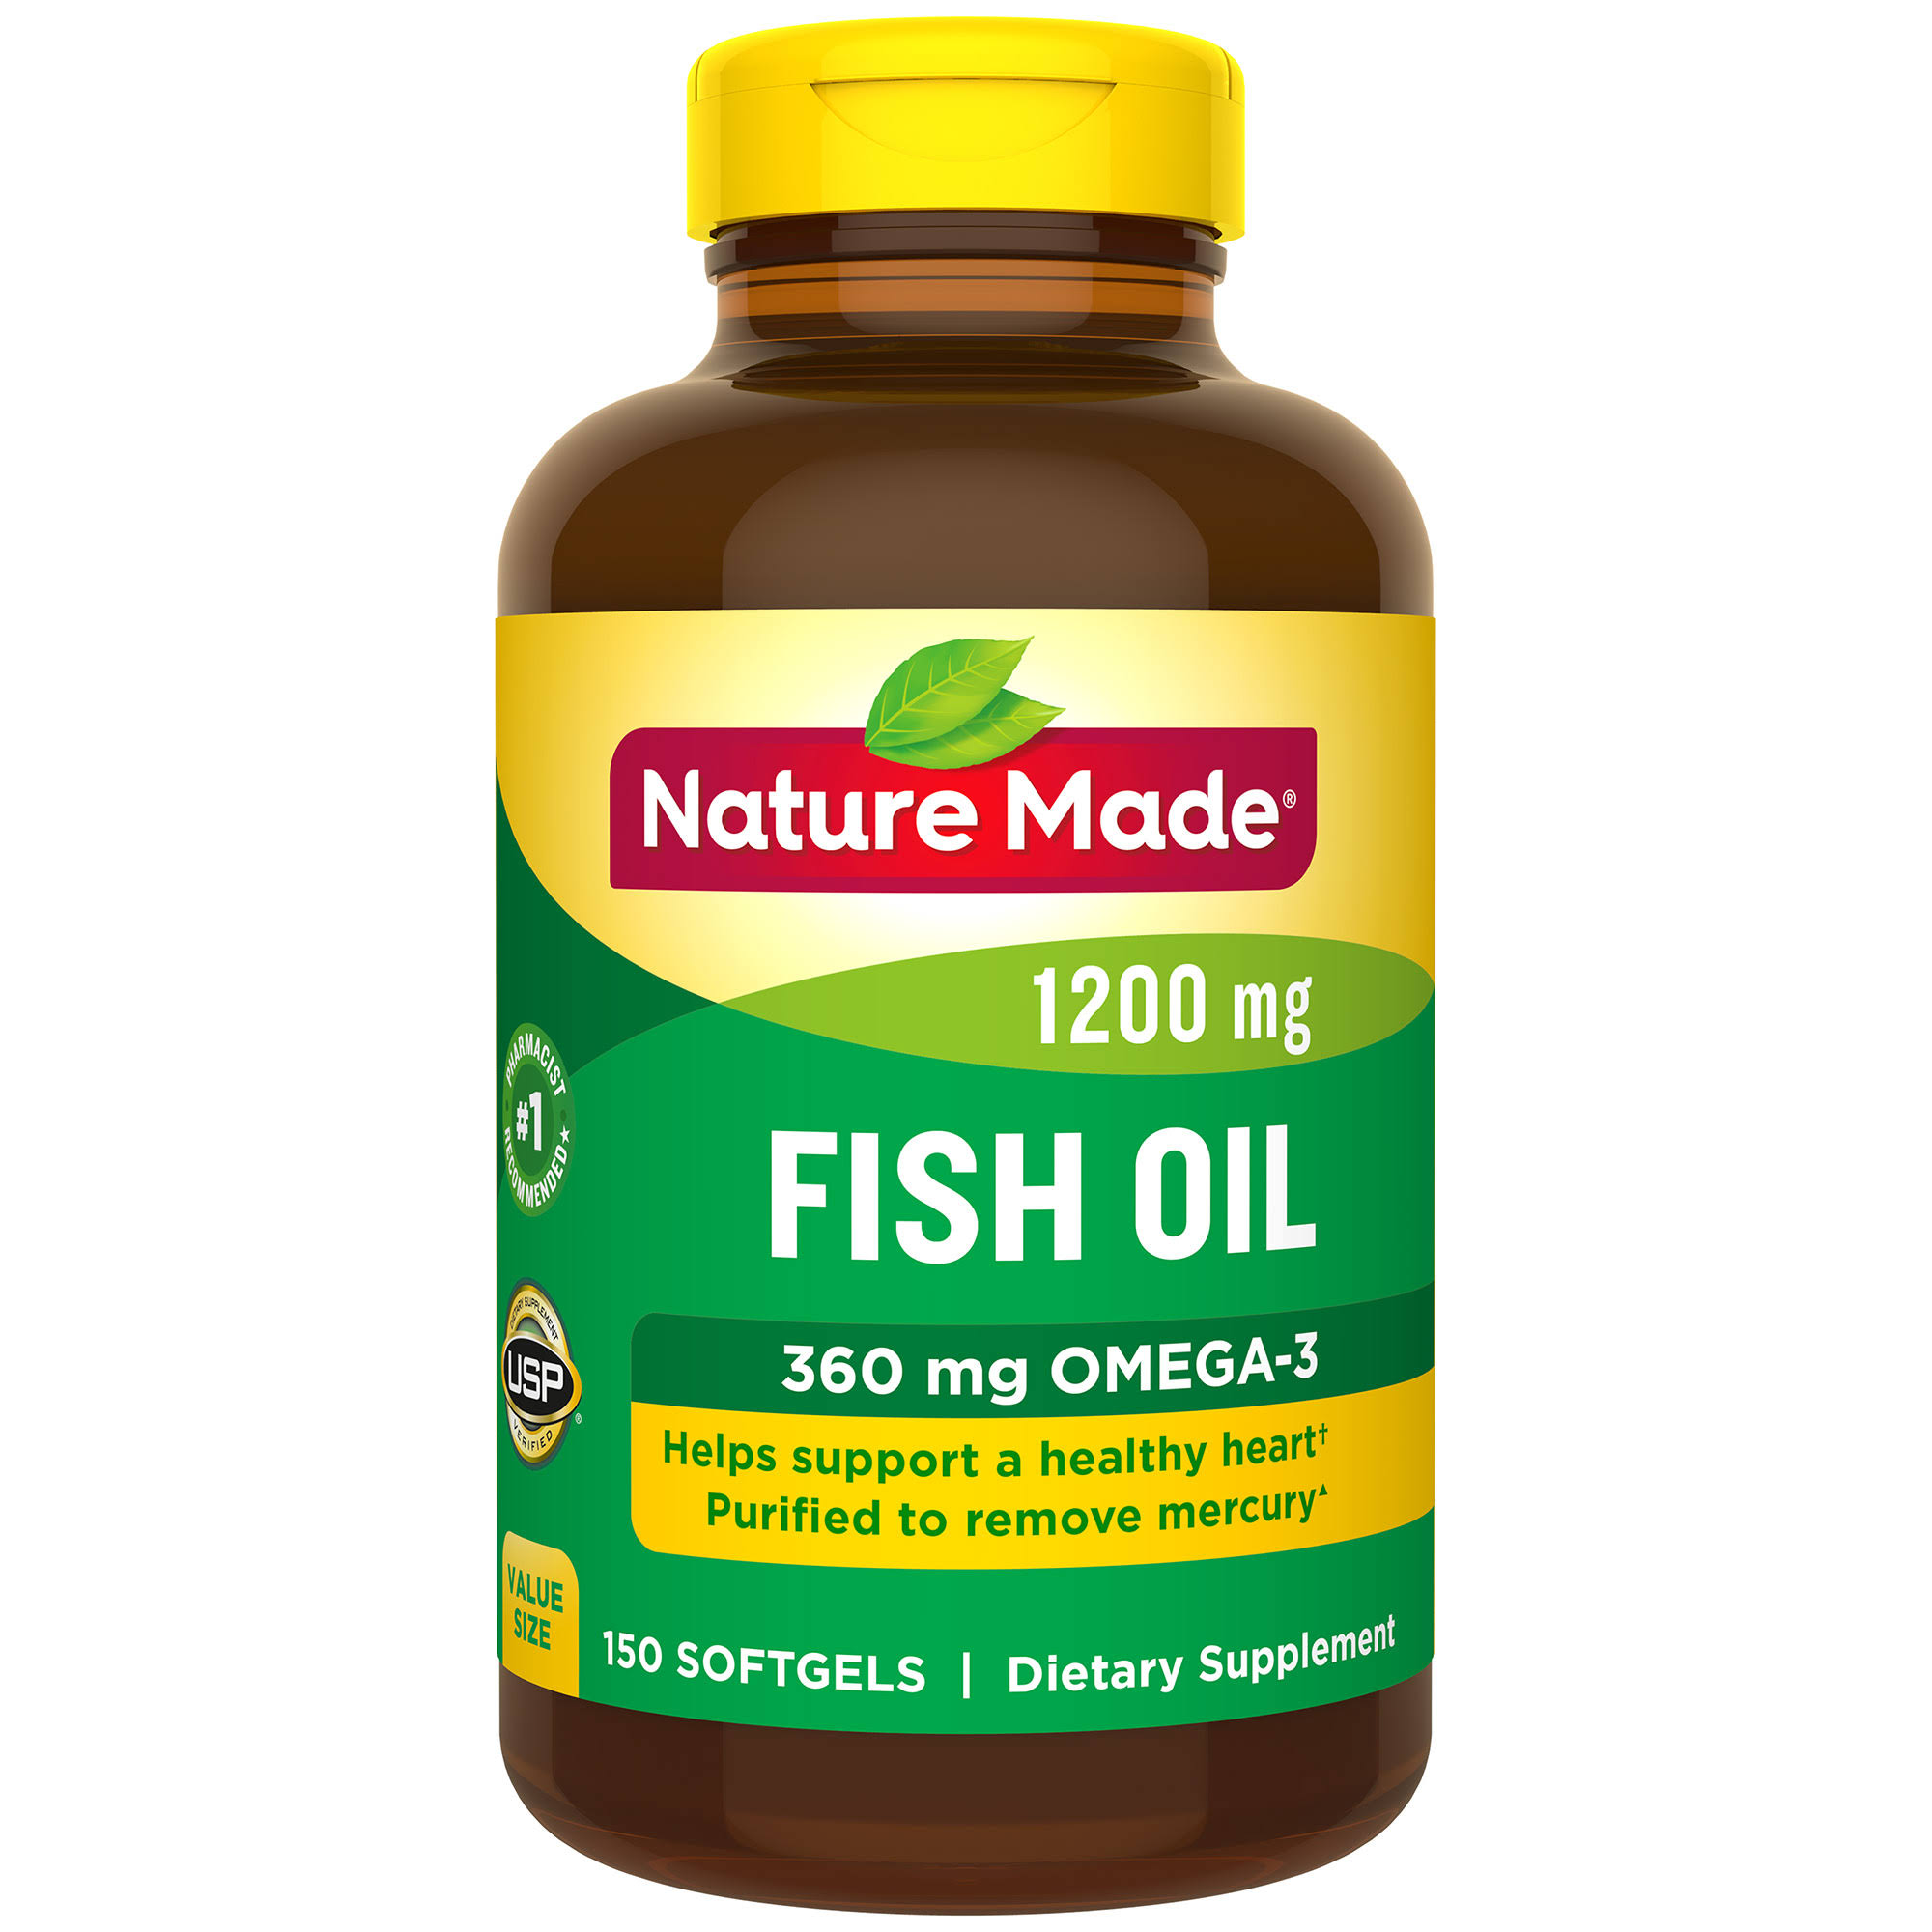 Nature Made Fish Oil Supplement - 1200mg, 150 Softgels